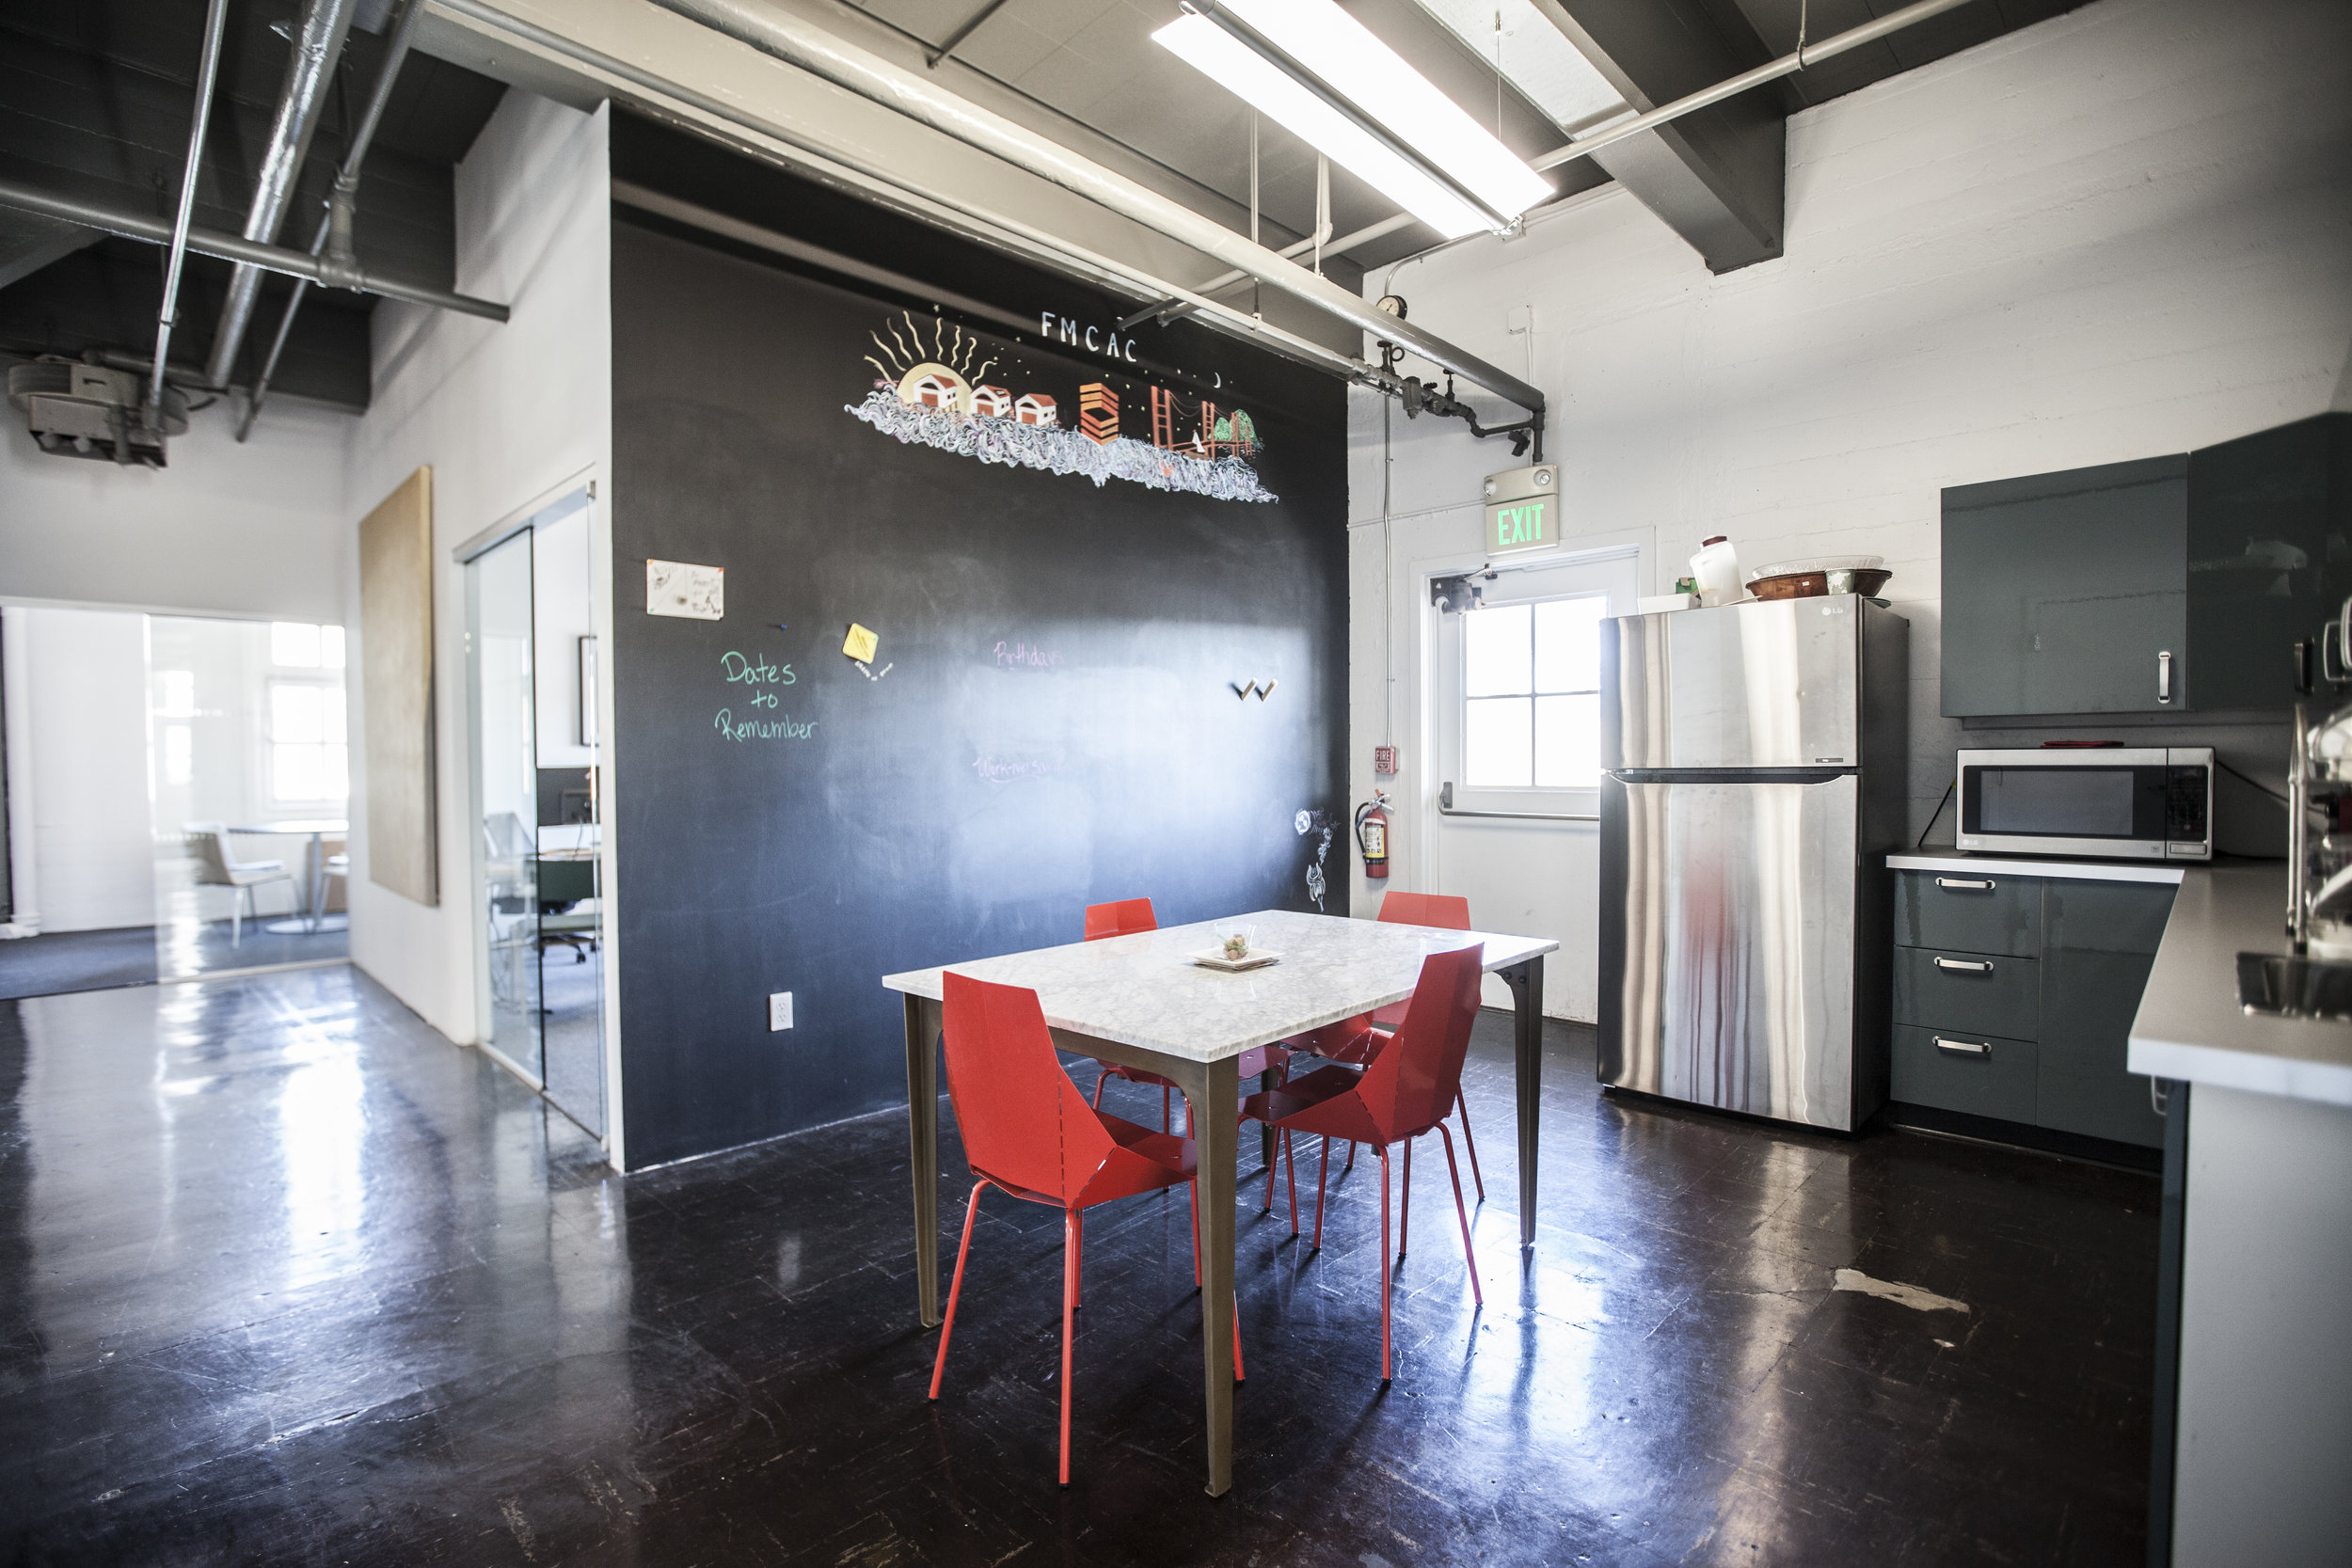 Touches of modern fun and brightness added to the kitchen area with a floor to ceiling chalk board.